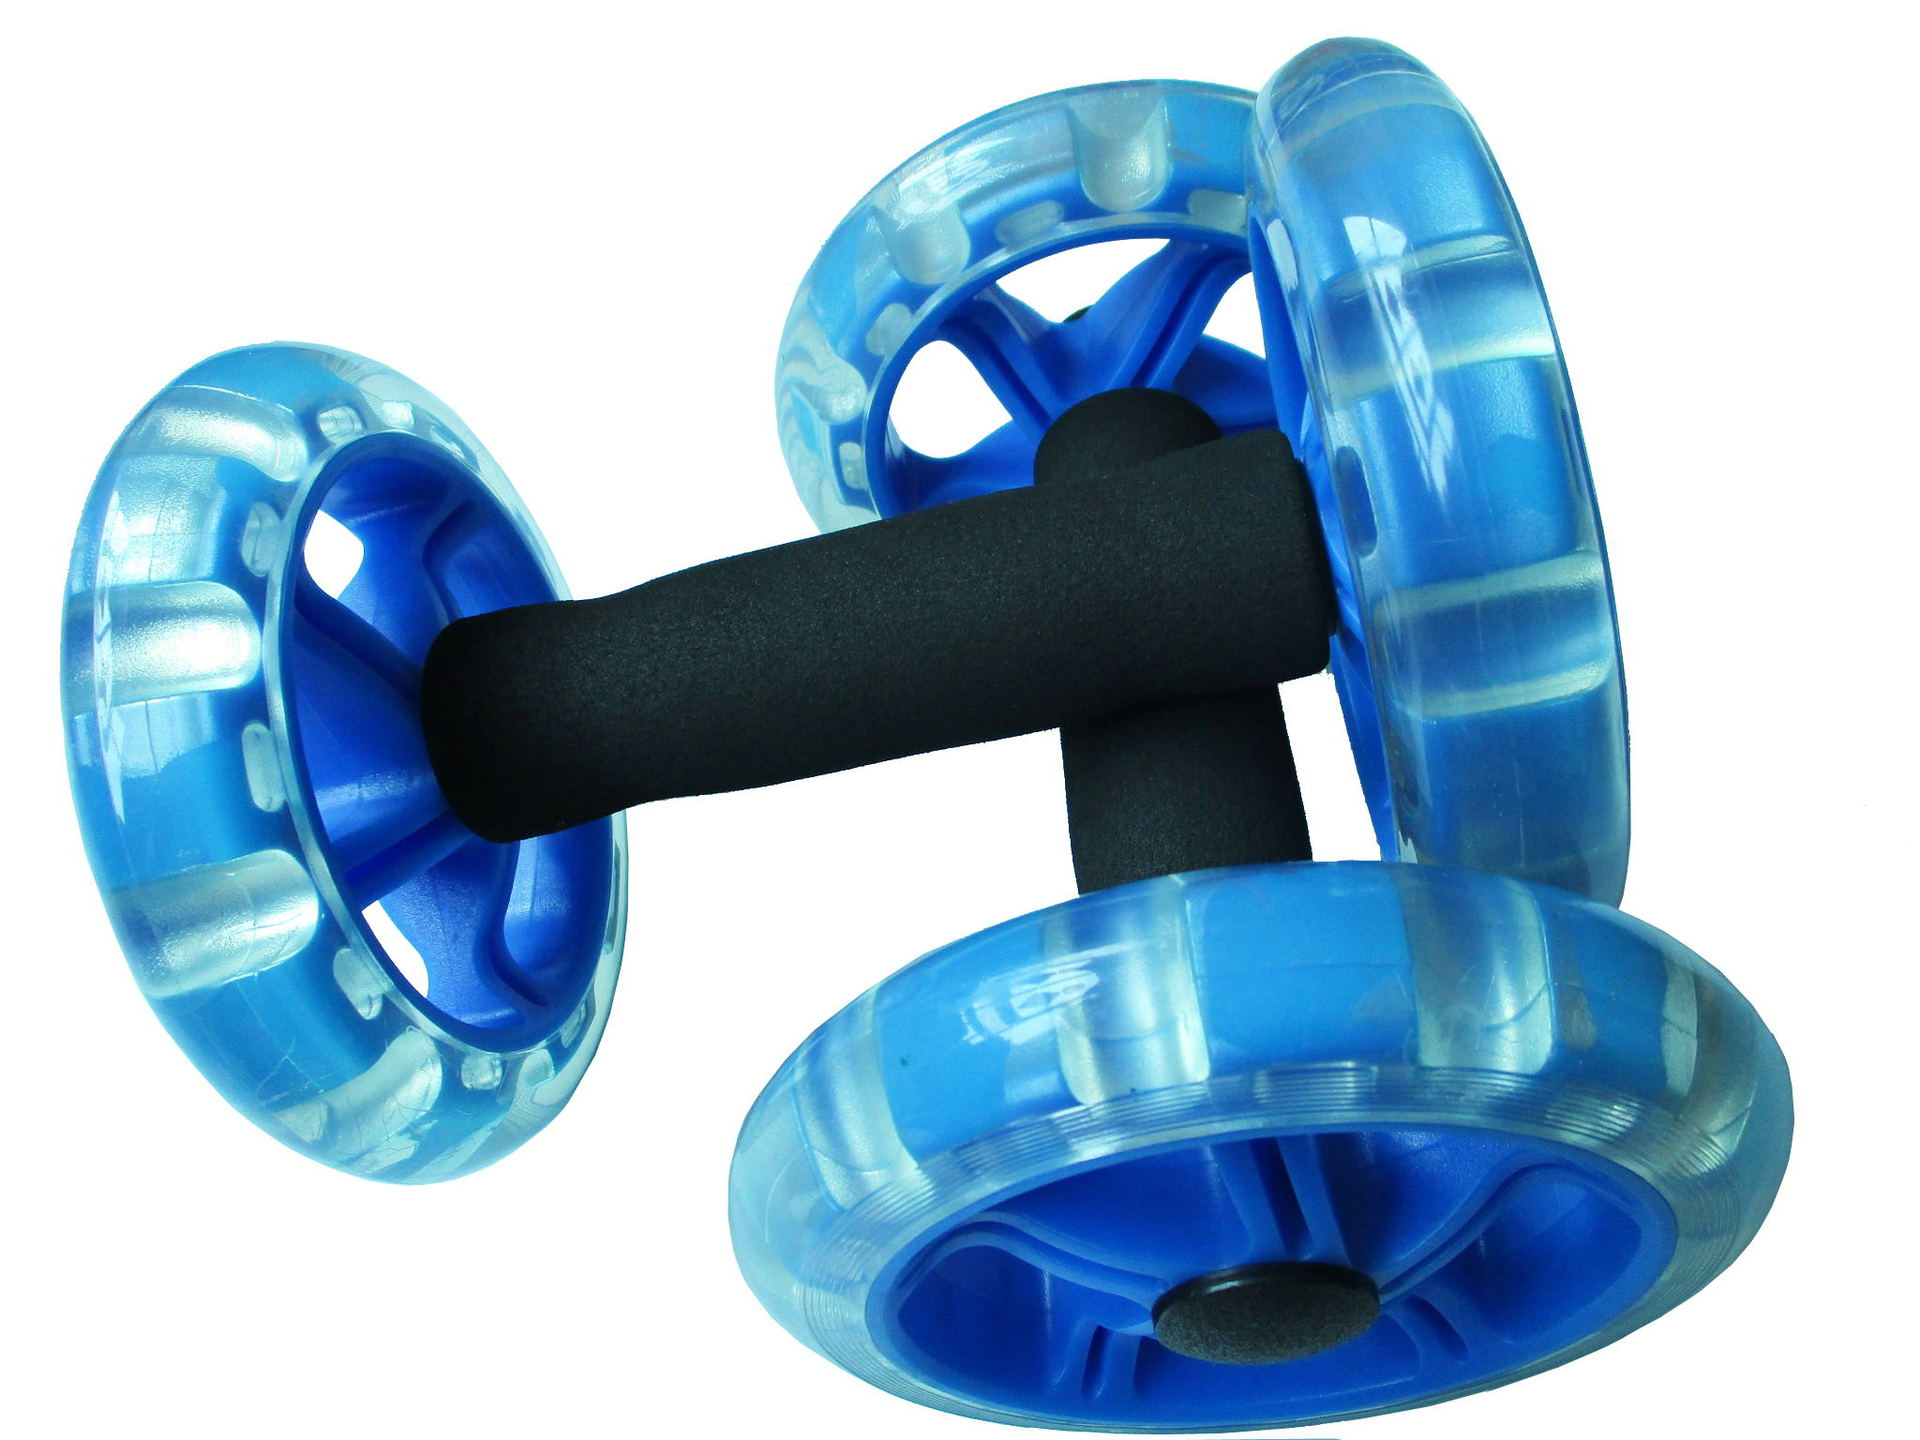 AB Wheel Rollers Four-wheeled Core Abdominal Wheels Workout for Ab Training Gym Home  black blue